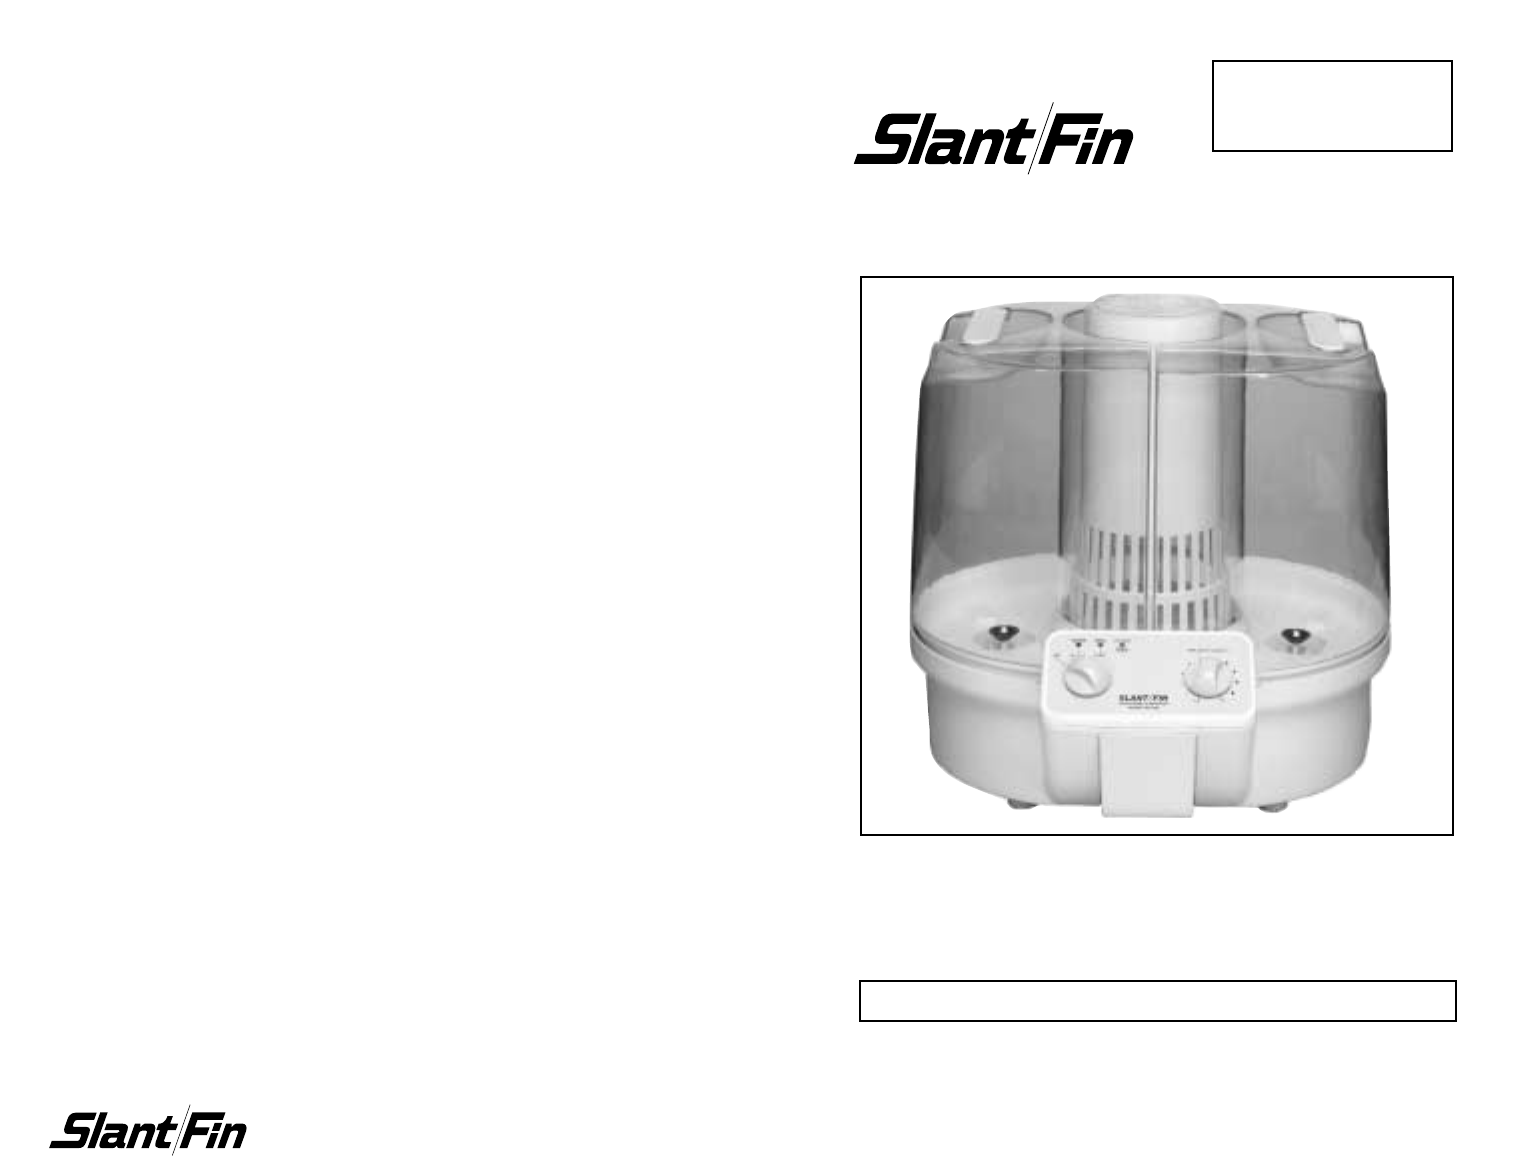 Slant/Fin Humidifier GF 300 User Guide ManualsOnline.com #242424